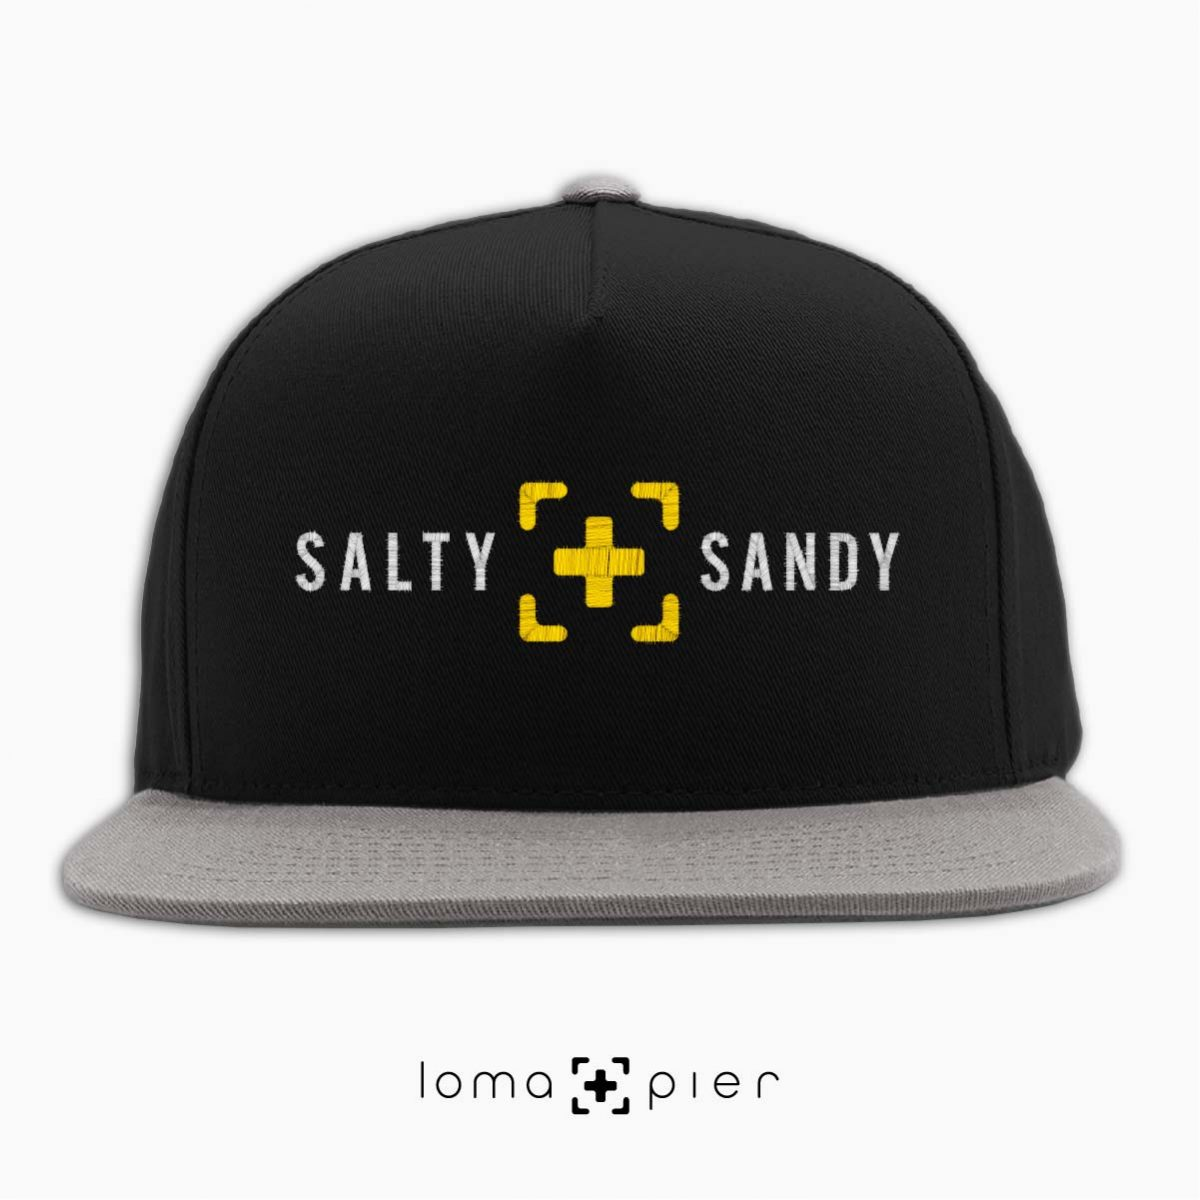 SALTY+SANDY beach snapback hat in black/grey by lomapier hat store